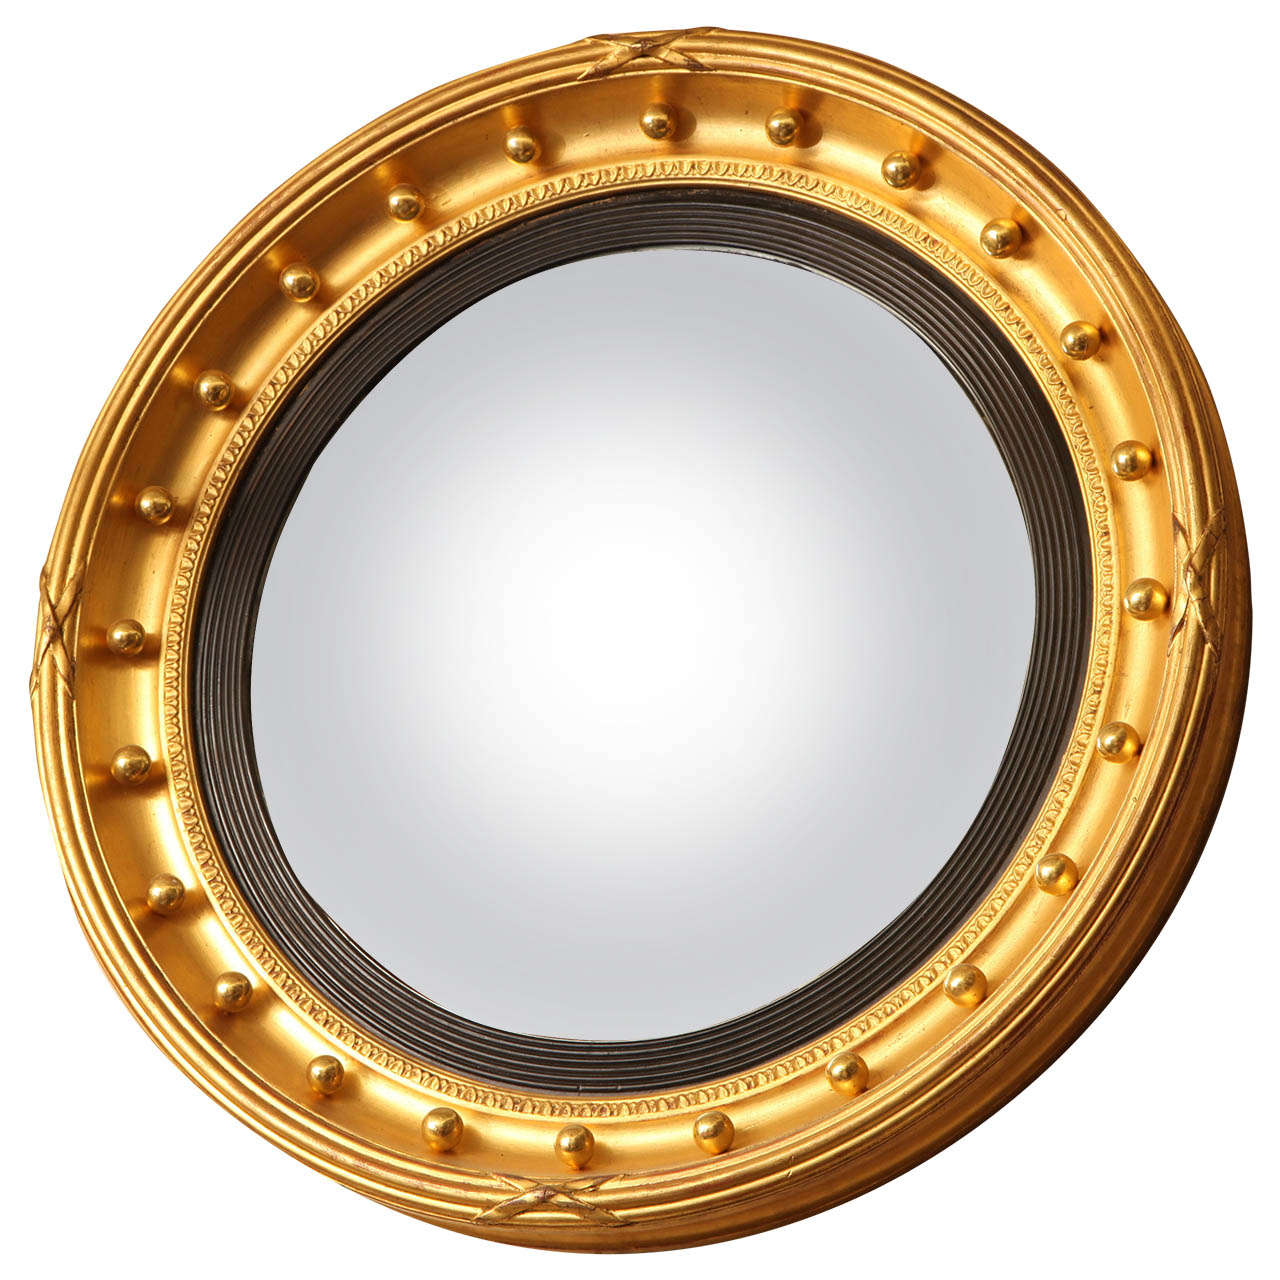 19th century english gilded convex mirror at 1stdibs for Convex mirror for home